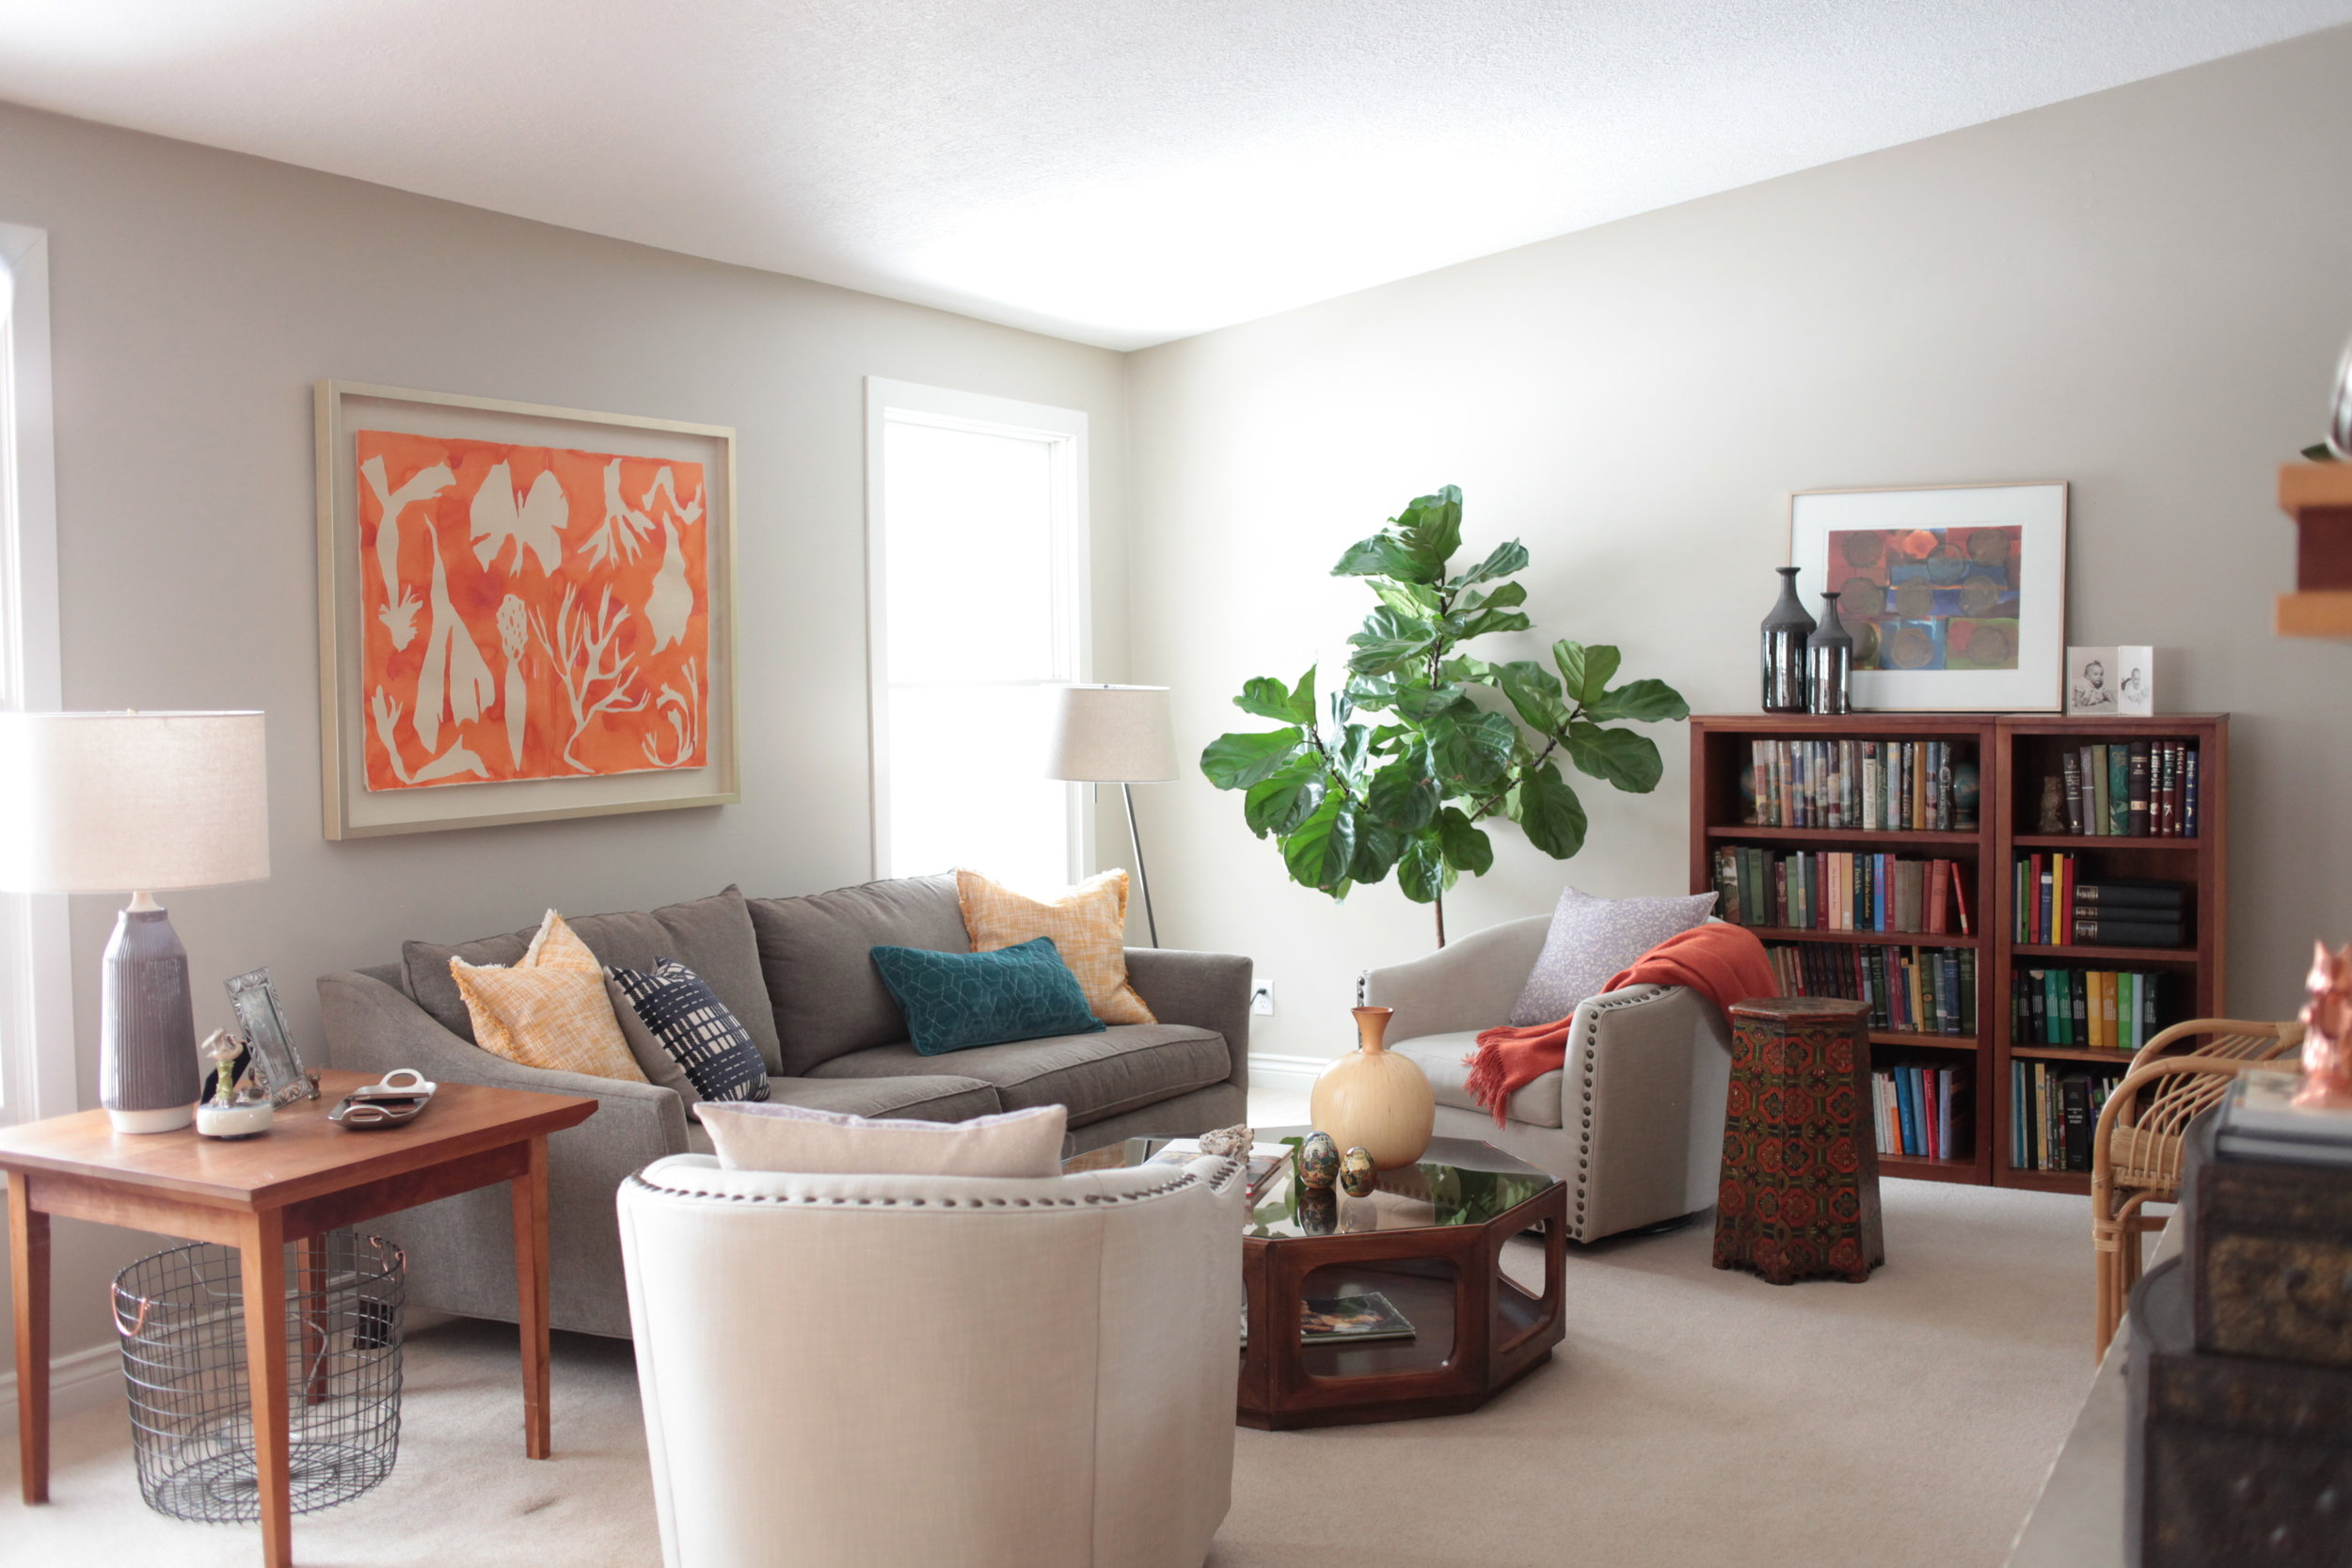 A vaulted, neutral, bohemian space with large fireplace, pops of orange, Kate Roebuck watercolor, Pottery Barn Harlow swivel chairs, fig tree, and wicker chair.jpeg.JPG